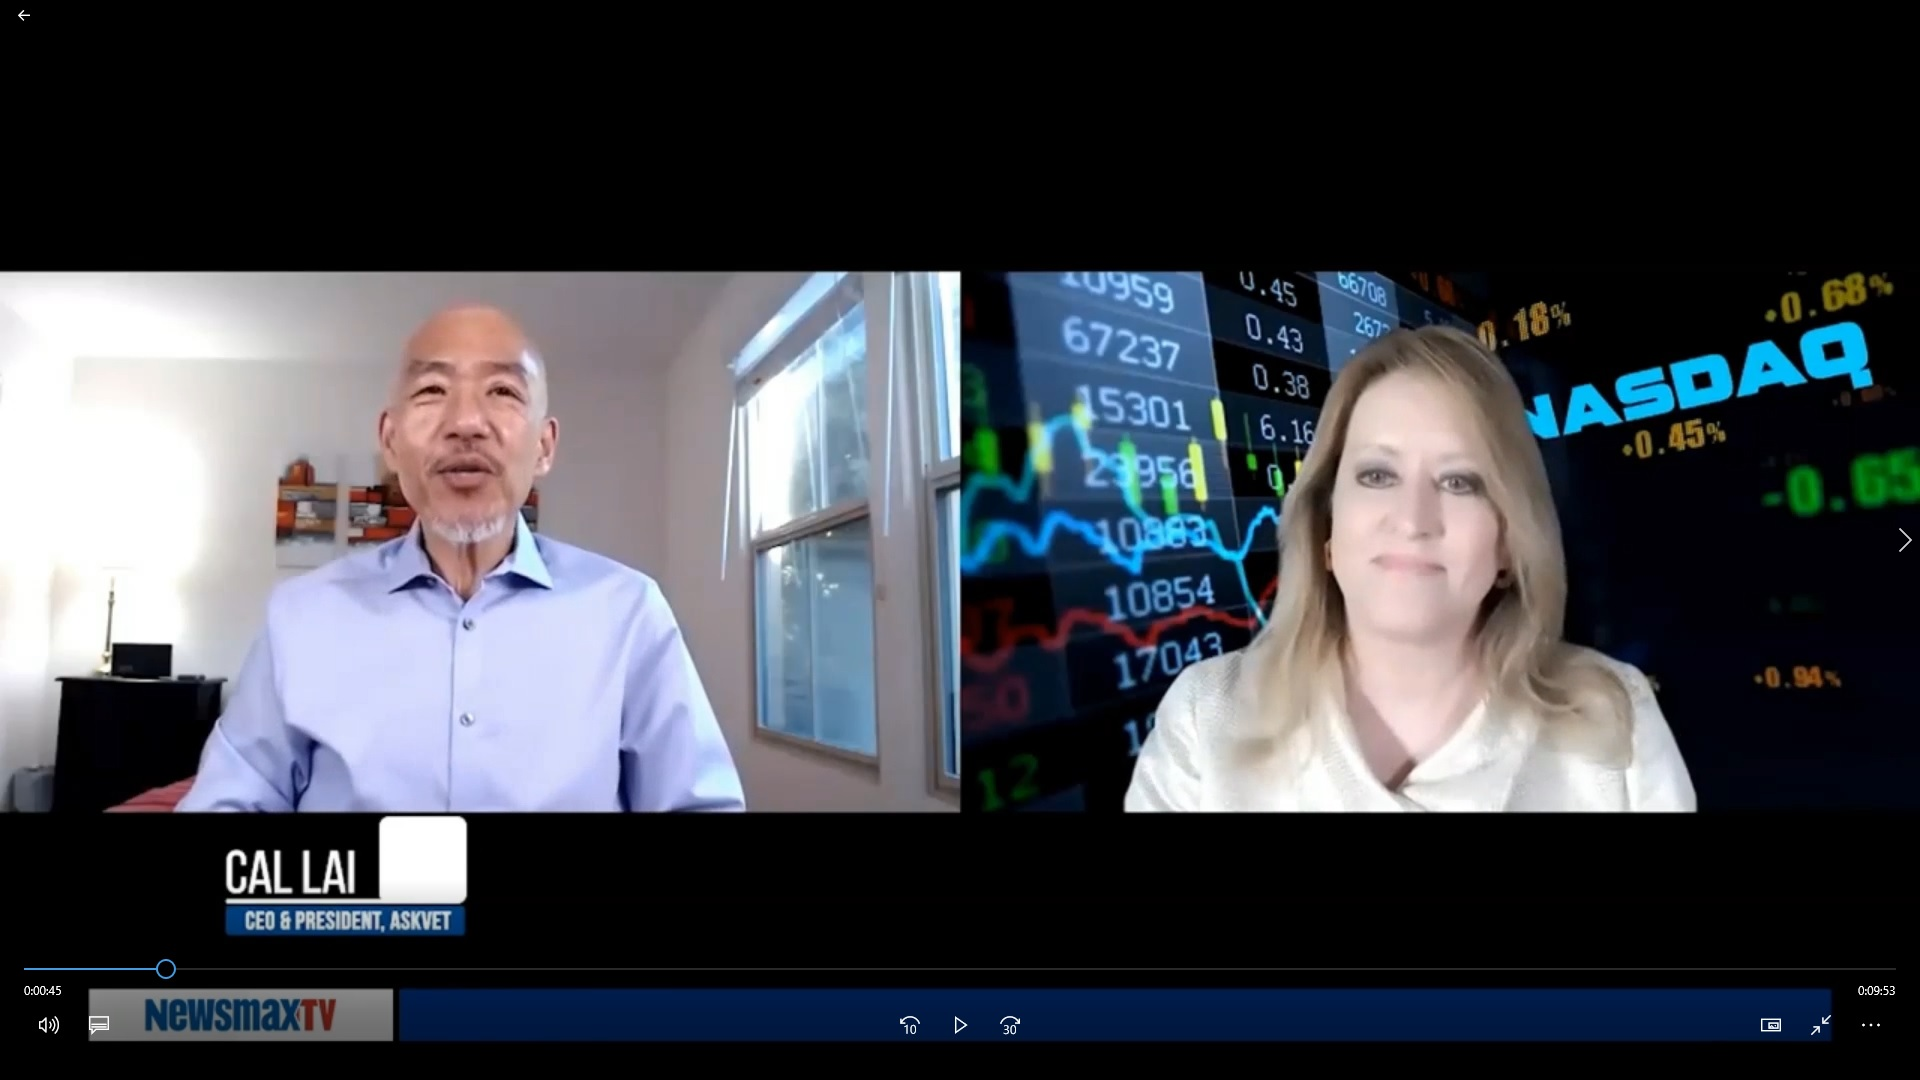 Cal Lai, CEO of AskVet, Inc. goes through the evolution and development of the AskVet App.